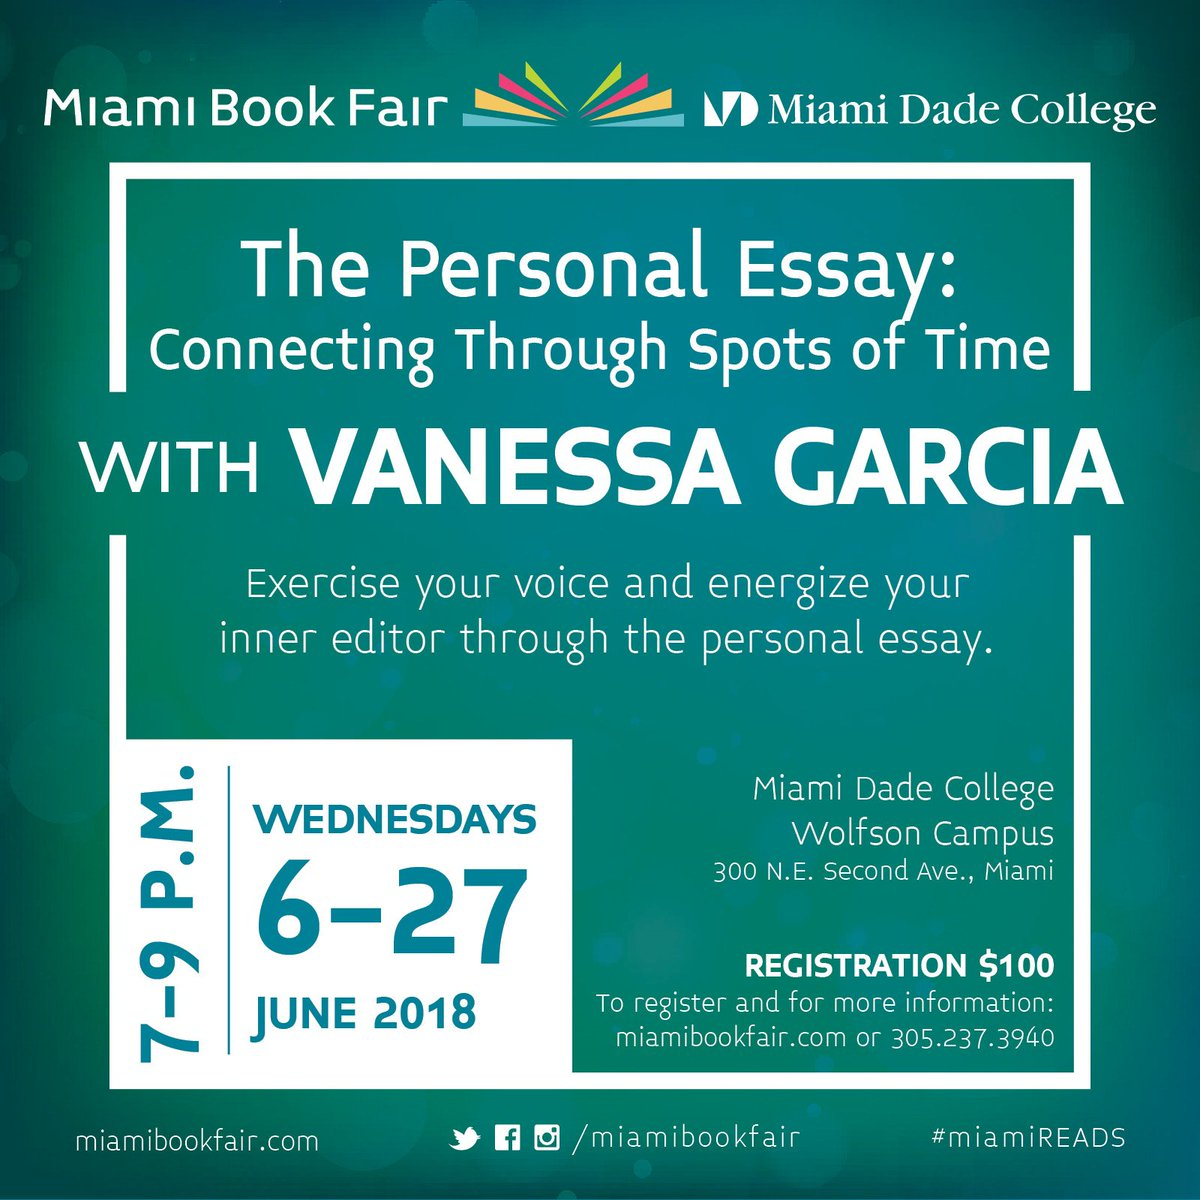 Legalize Gay Marriage Essay Miami Book Fair On Twitter Sometimes A Short Moment In Time Or Short  Essay Is A Gem Holding The Greatest Power Of Connection  The Universal  Always  Essay Hook Ideas also What I Want To Be When I Grow Up Essay Miami Book Fair On Twitter Sometimes A Short Moment In Time Or  Ww2 Essay Topics